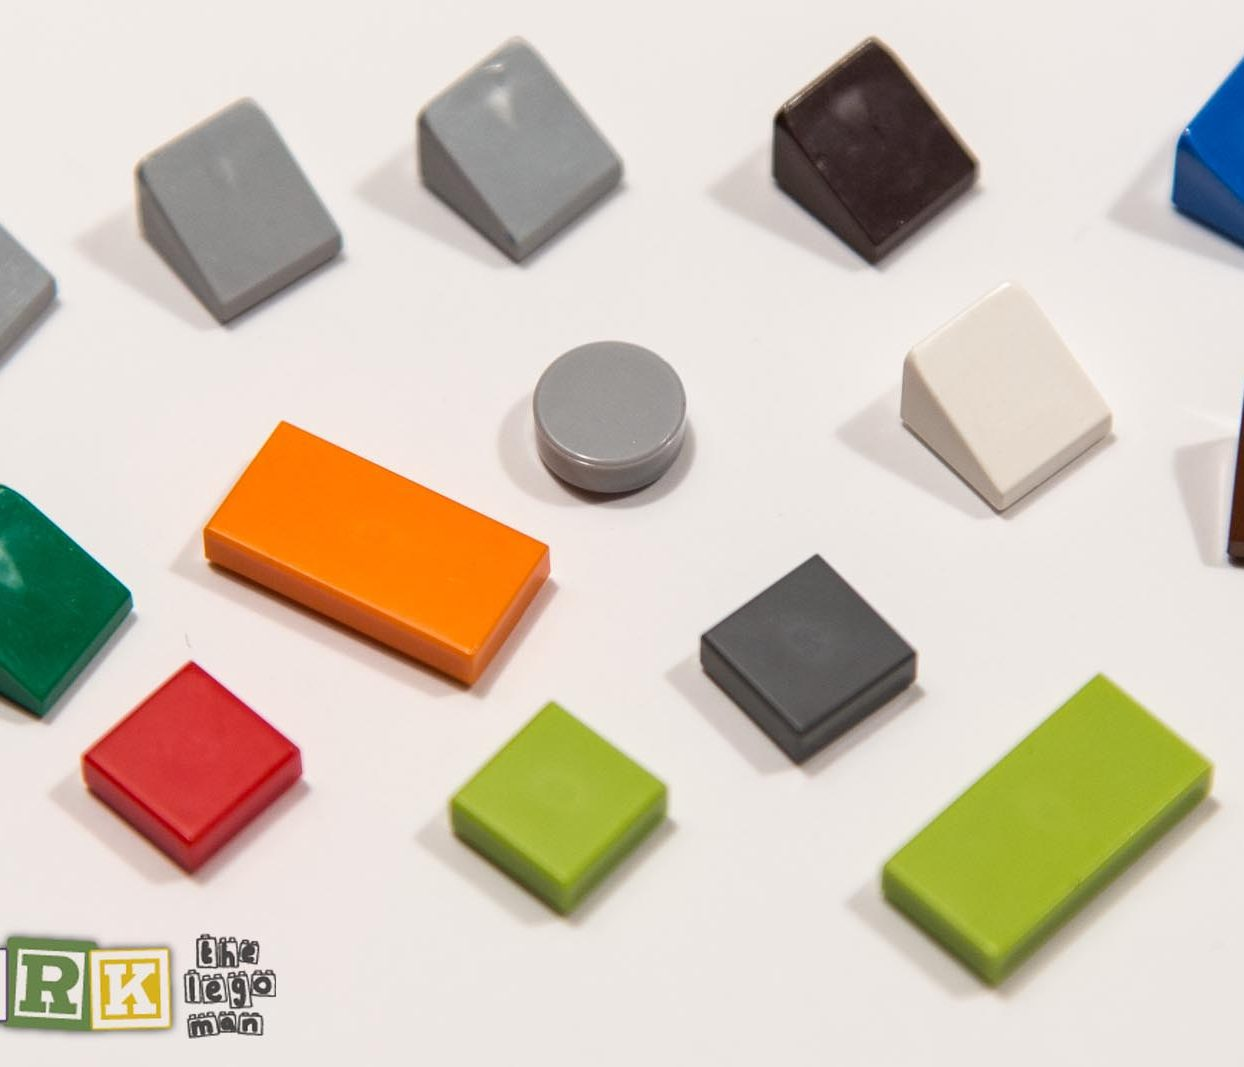 Lego Assorted Colour Flat Plates and 1x1 Slopes